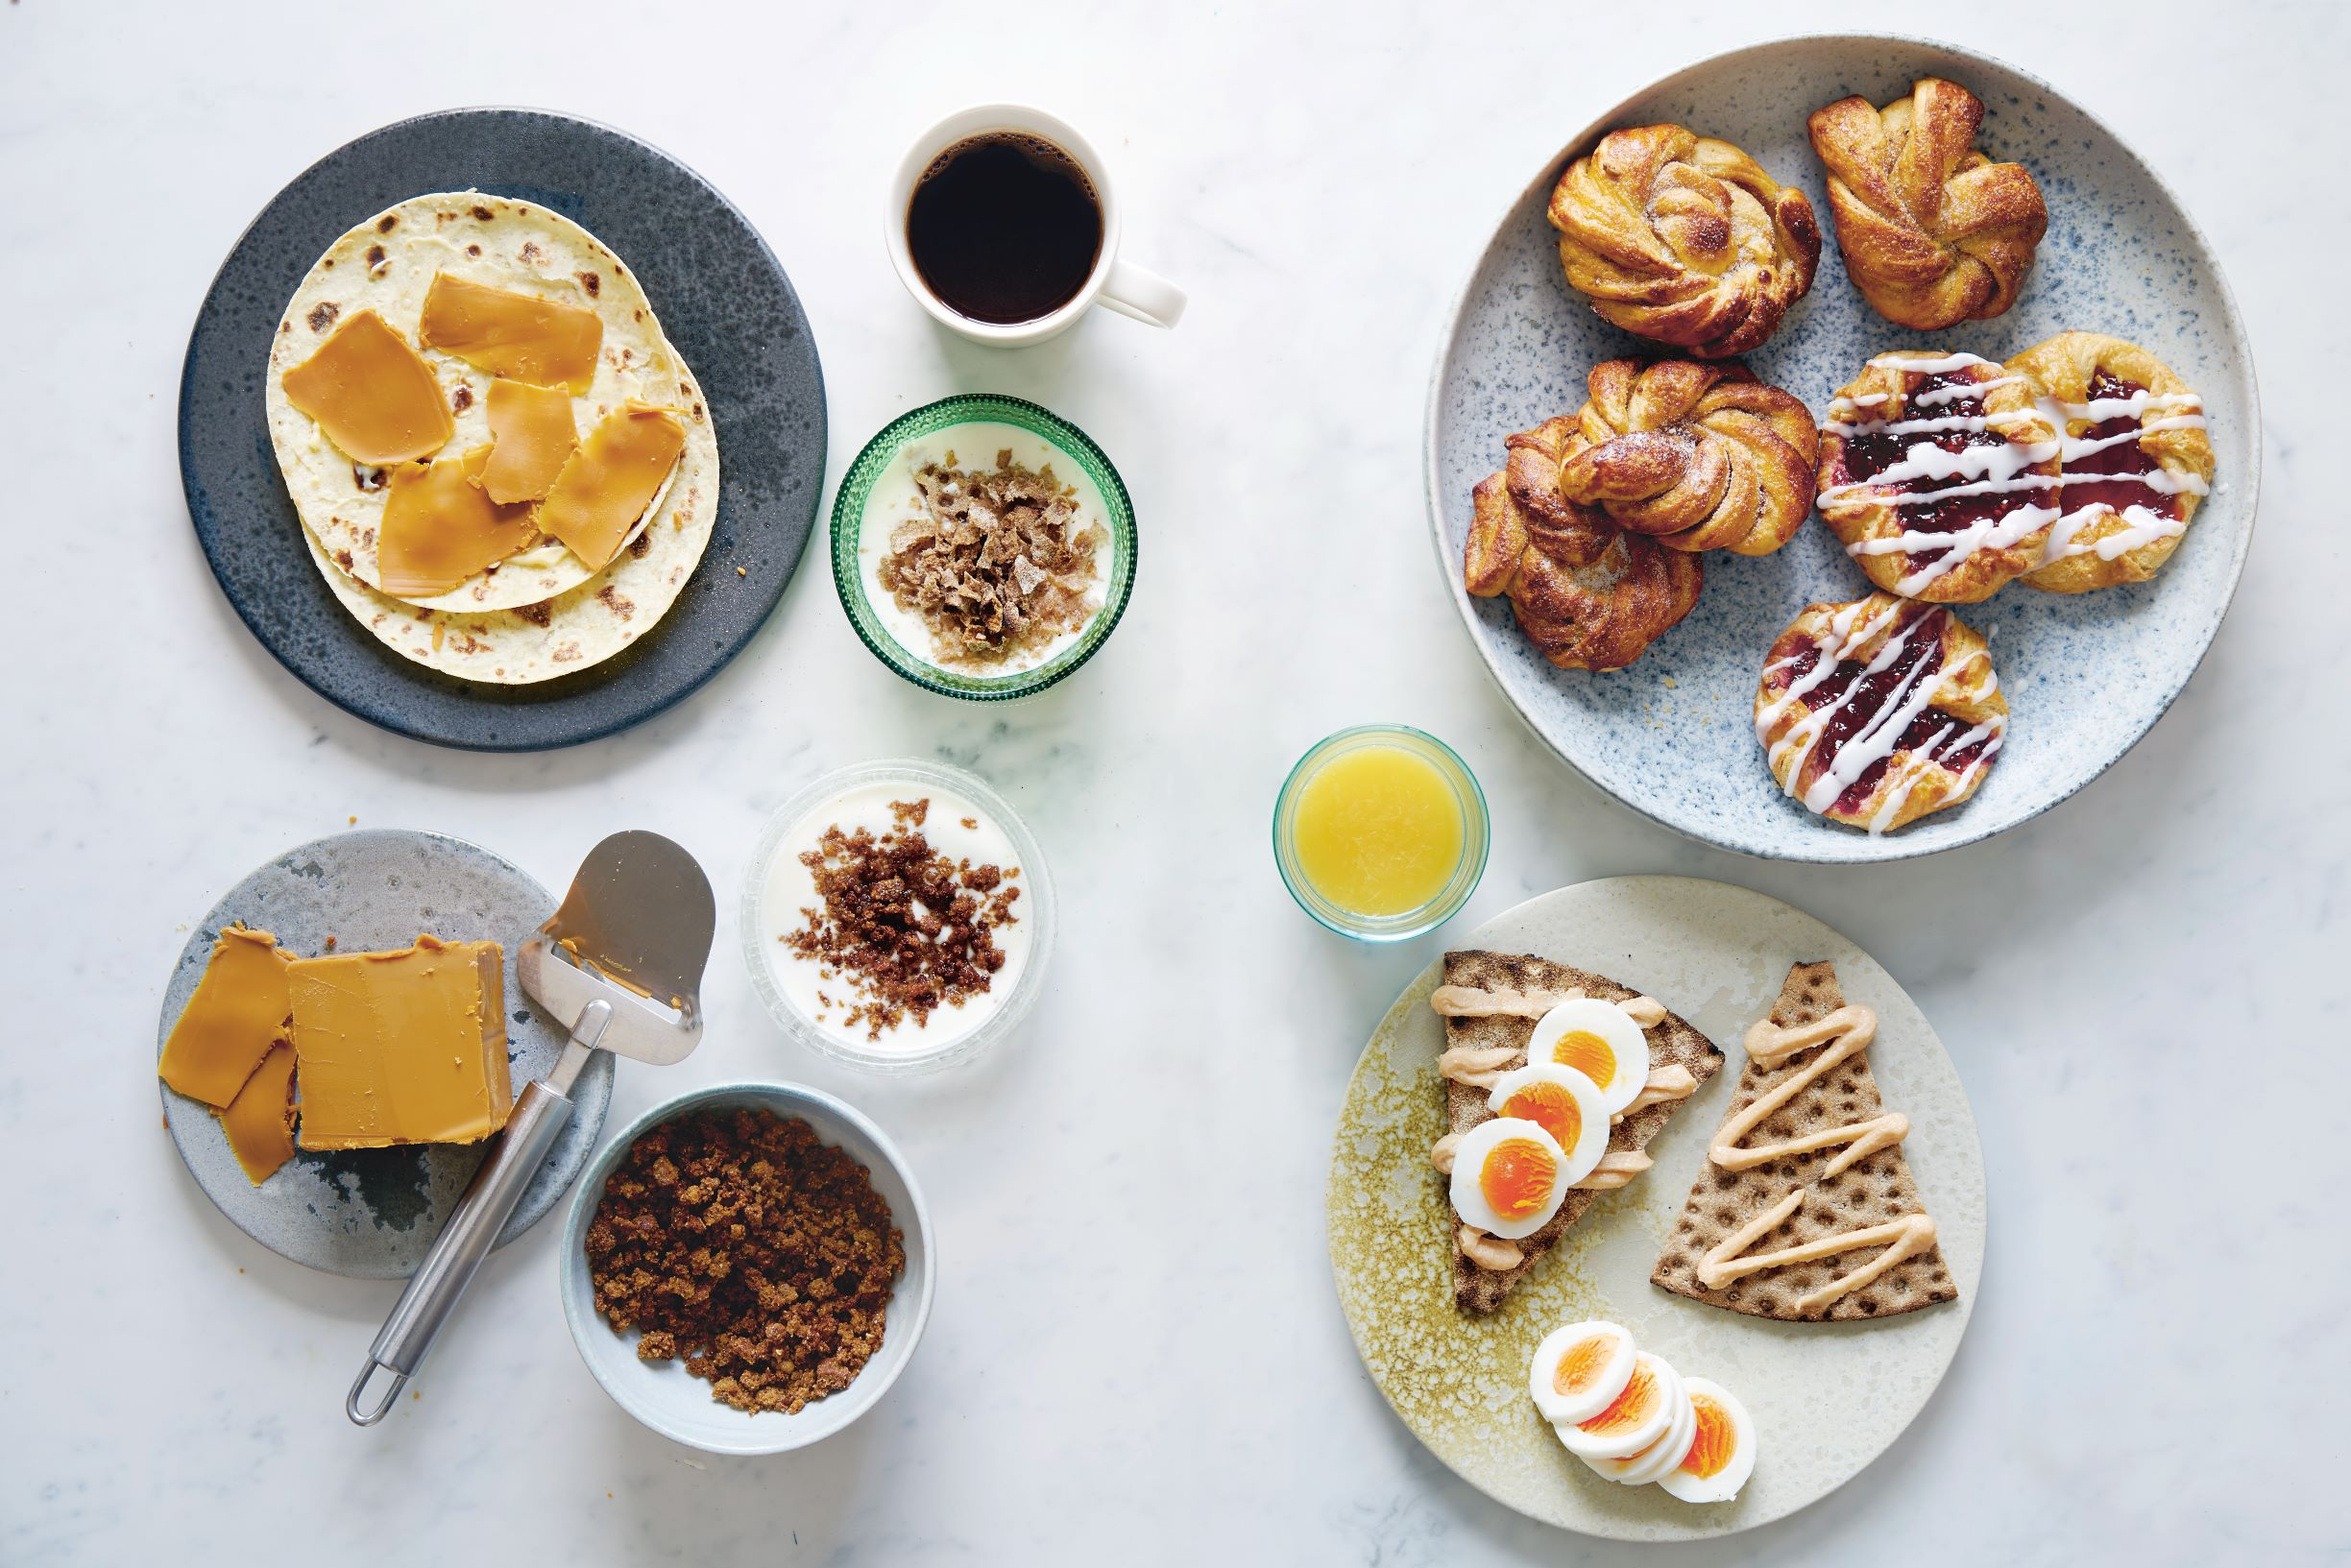 Clockwise from top left: Brown cheese sandwich; filmjölk; Danish pastry; cardamom buns; crispbread with smoked cod roe spread; ymerdrys; ymer with ymerdrys; all from the Nordic pages of Breakfast: The Cookbook